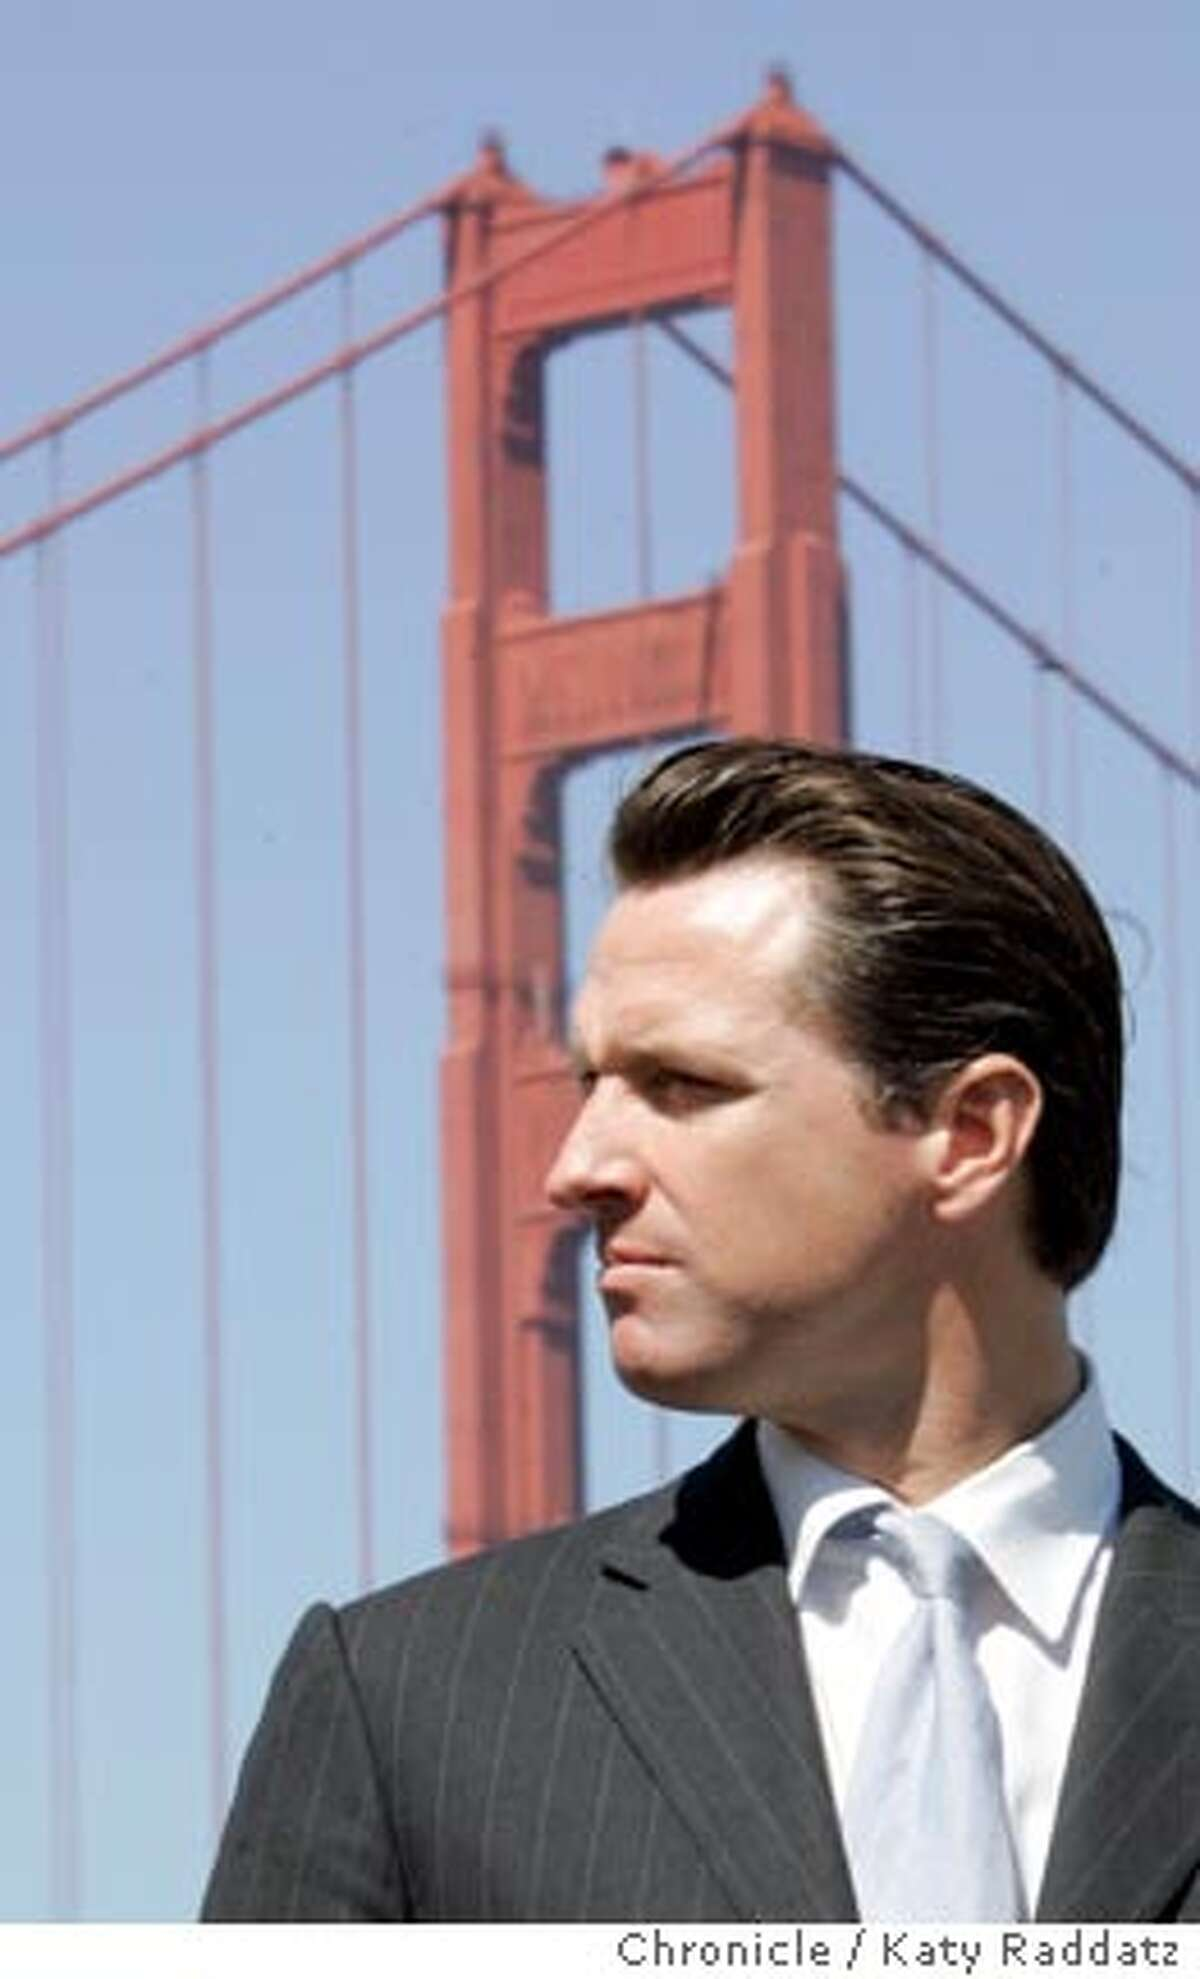 TIDALWAVE_044_RAD.jpg SHOWN: Mayor Gavin Newsom, joined by Susan Leal , General Manager of the SFPUC, and Jared Blumenfeld, Director of the Dept. of Environment in SF, announce a plan to harness tidal energy by sinking giant turbines under the Golden Gate Bridge that would produce alternative energy for the city. These pictures made on Monday, Sept. 19, 2006, in San Francisco, CA. (Katy Raddatz/The S.F.Chronicle) **Gavin Newsom, Jared Blumenfeld, Susan Leal